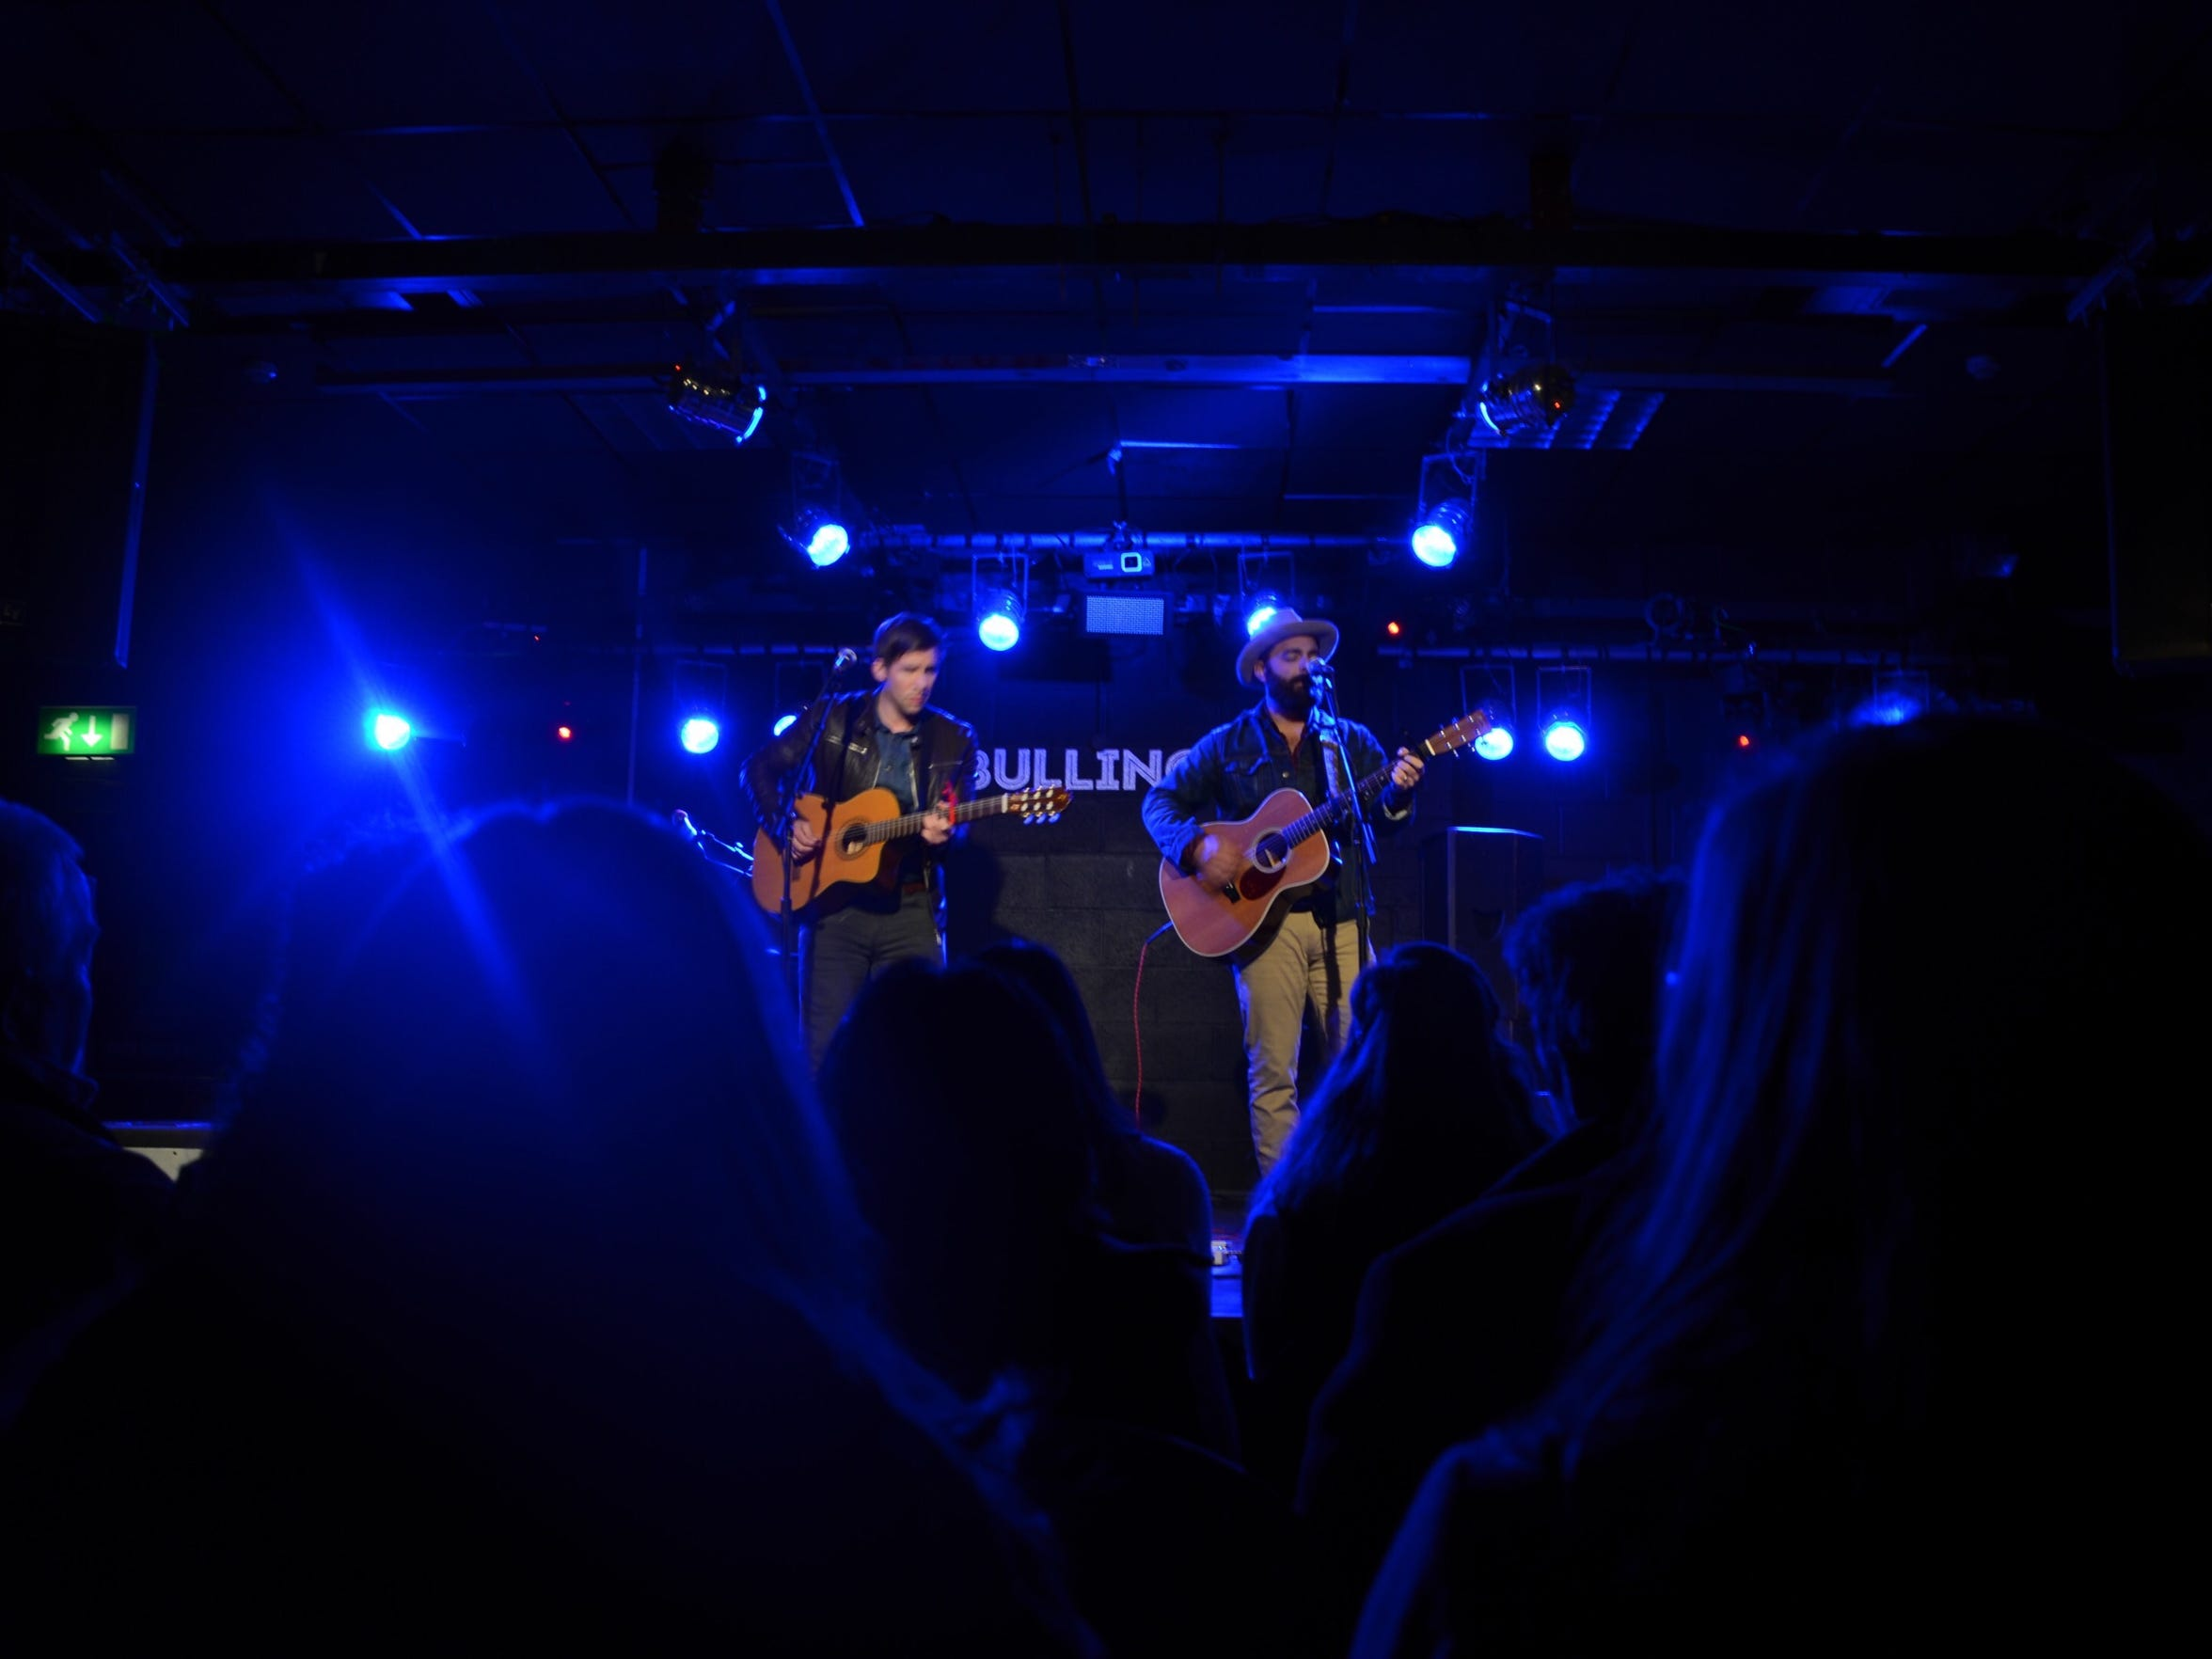 Drew Holcomb & the Neighbors at The Bullingdon in February 2015